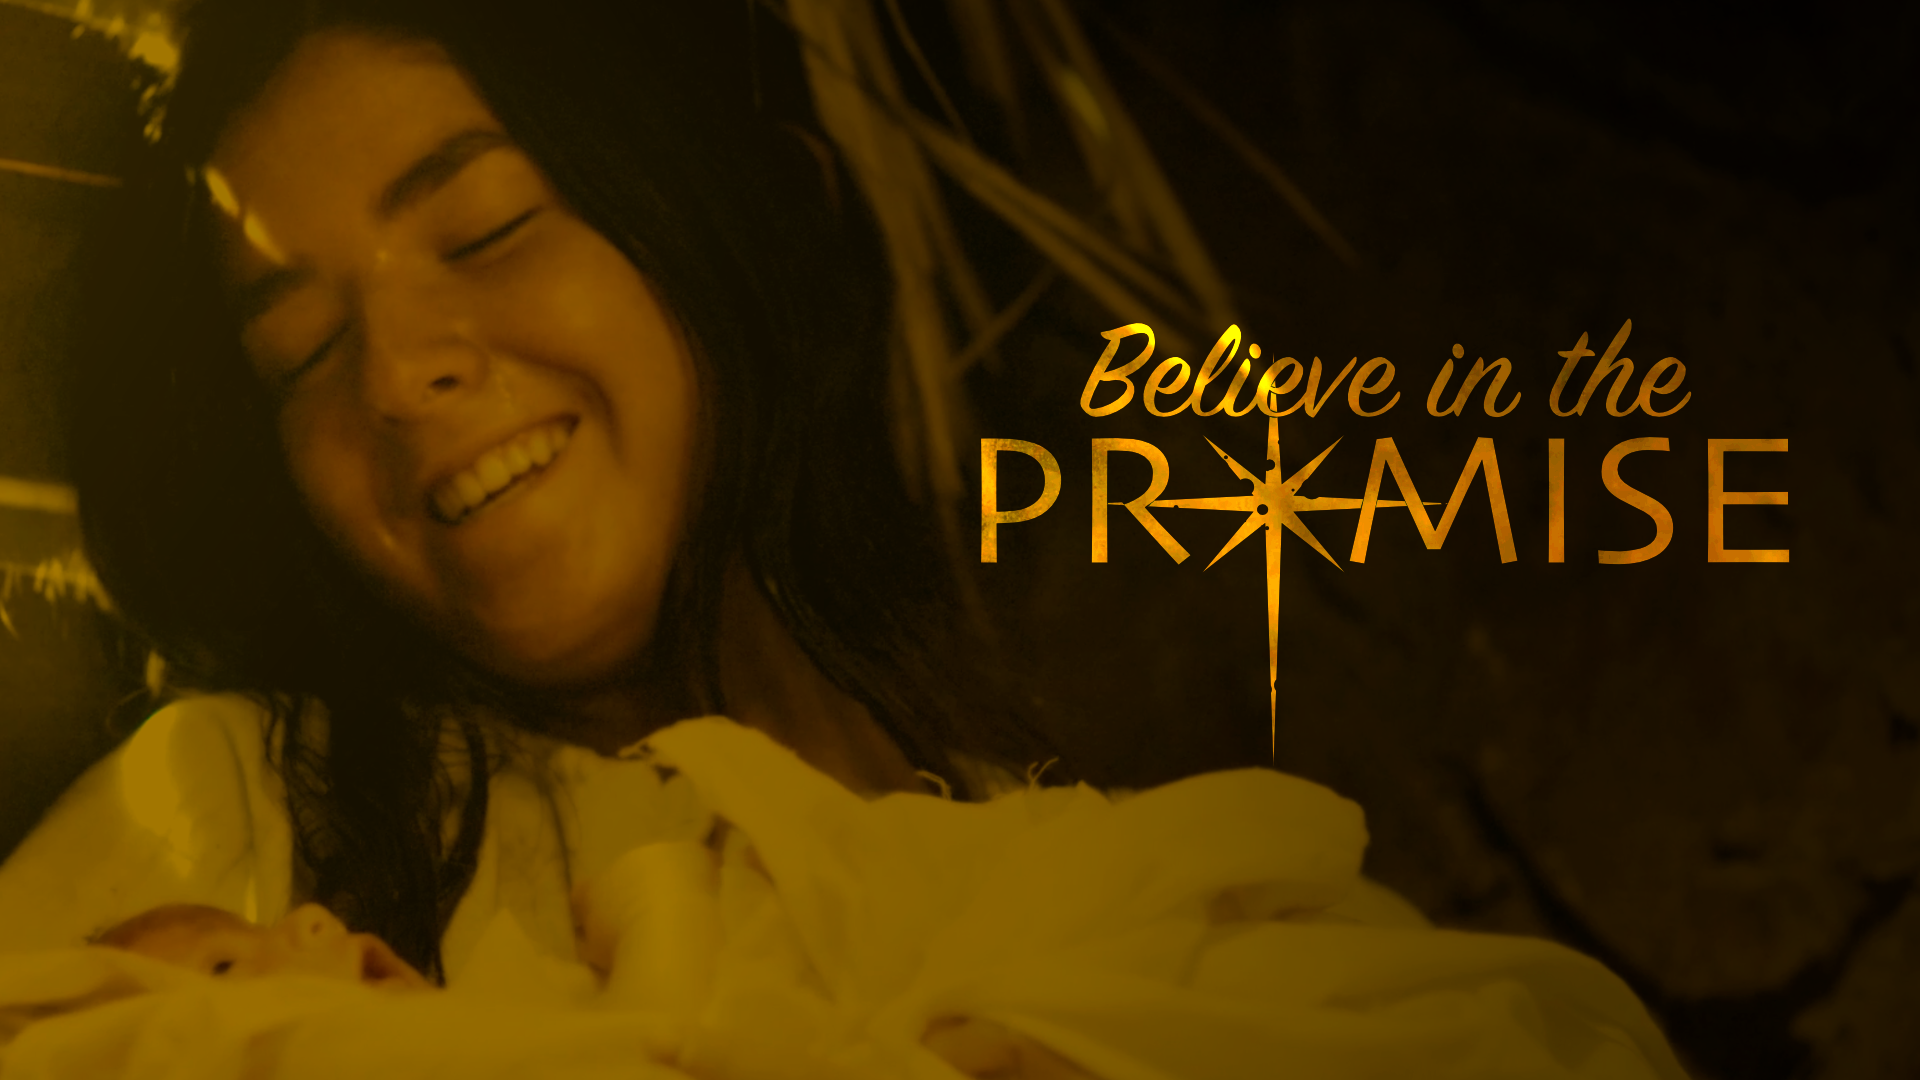 Believe In The PROMISE_2540x1440_FINAL.png